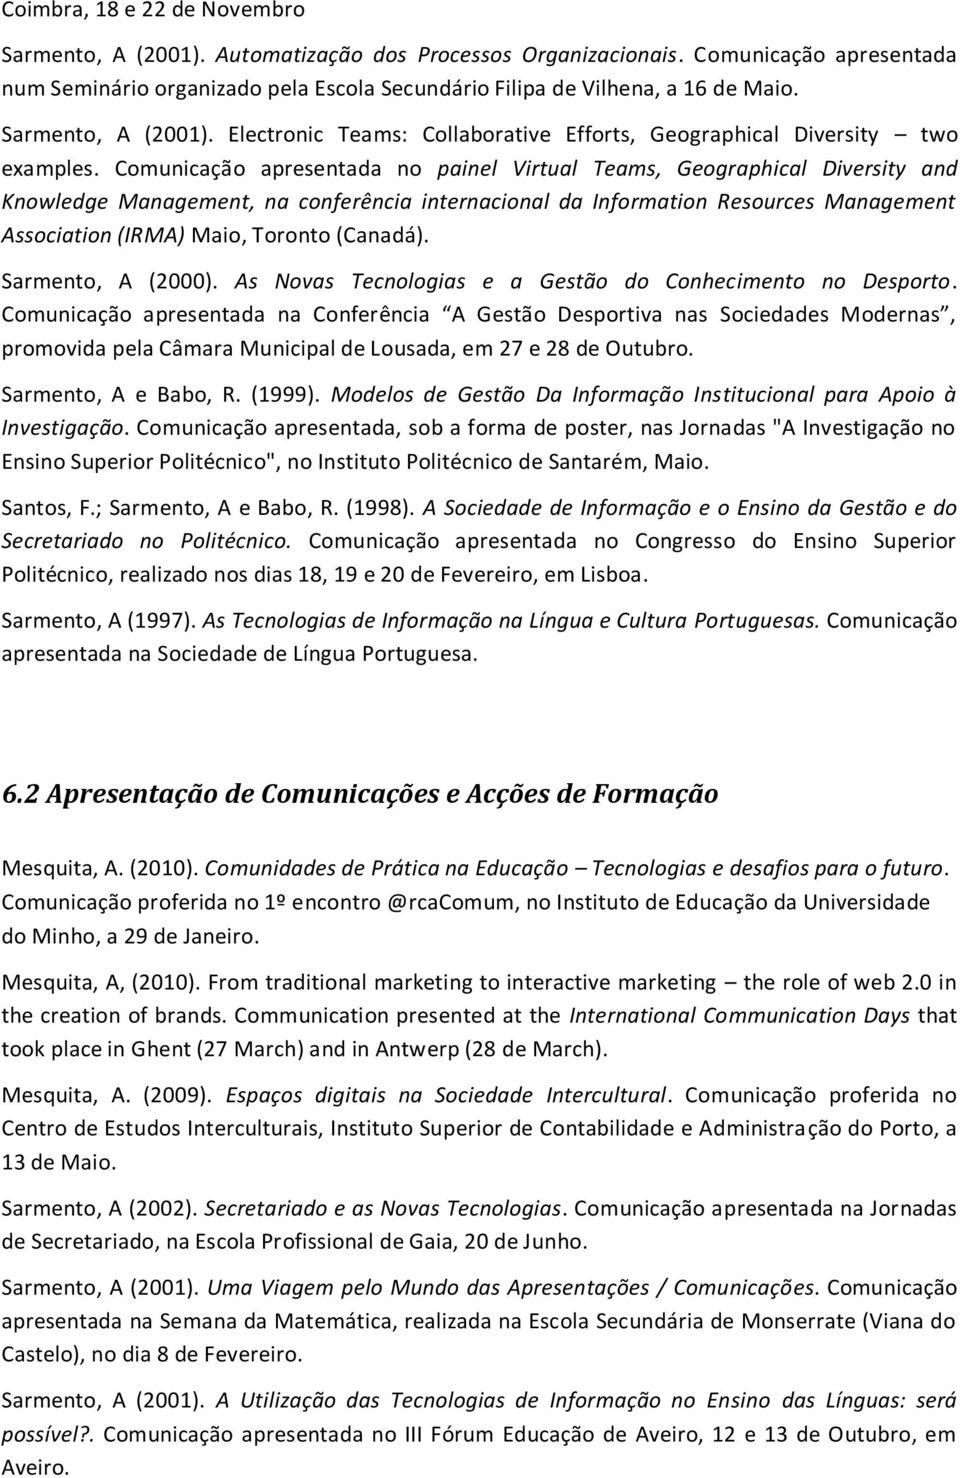 Comunicação apresentada no painel Virtual Teams, Geographical Diversity and Knowledge Management, na conferência internacional da Information Resources Management Association (IRMA) Maio, Toronto